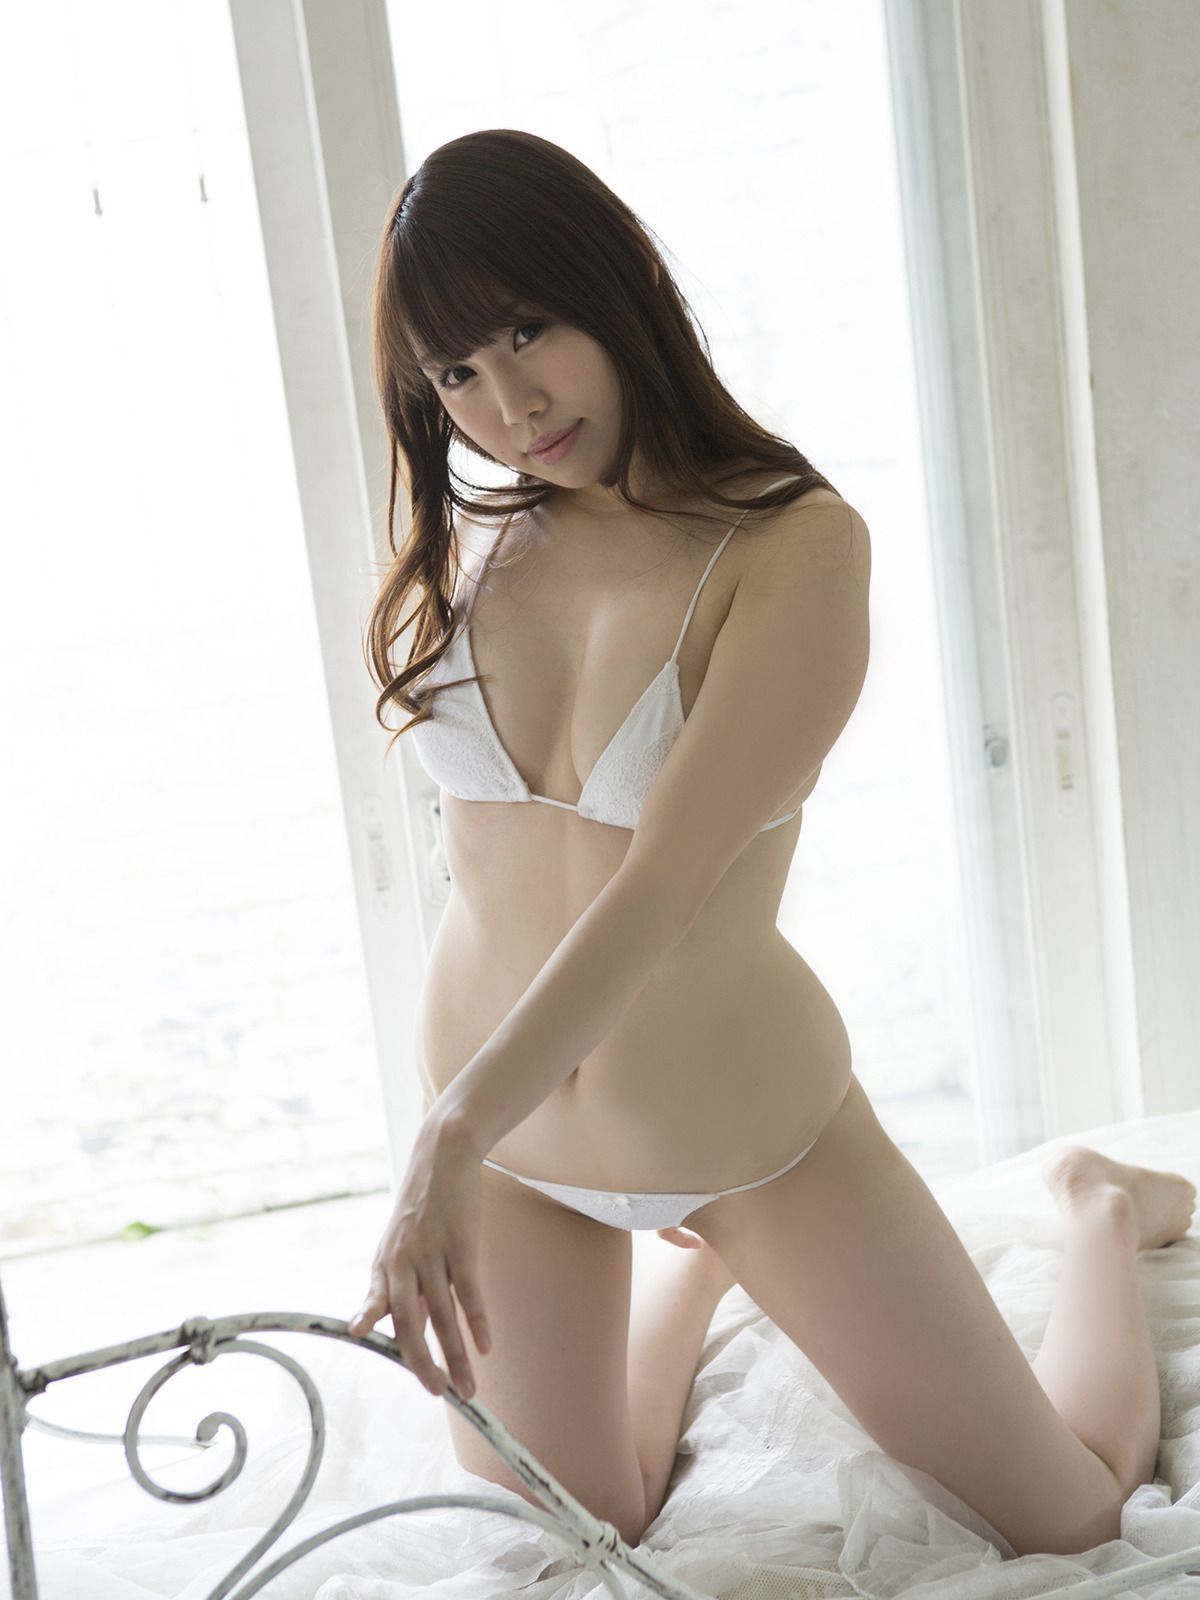 Mai Tsukamoto is naturally energized by the ample G breast007